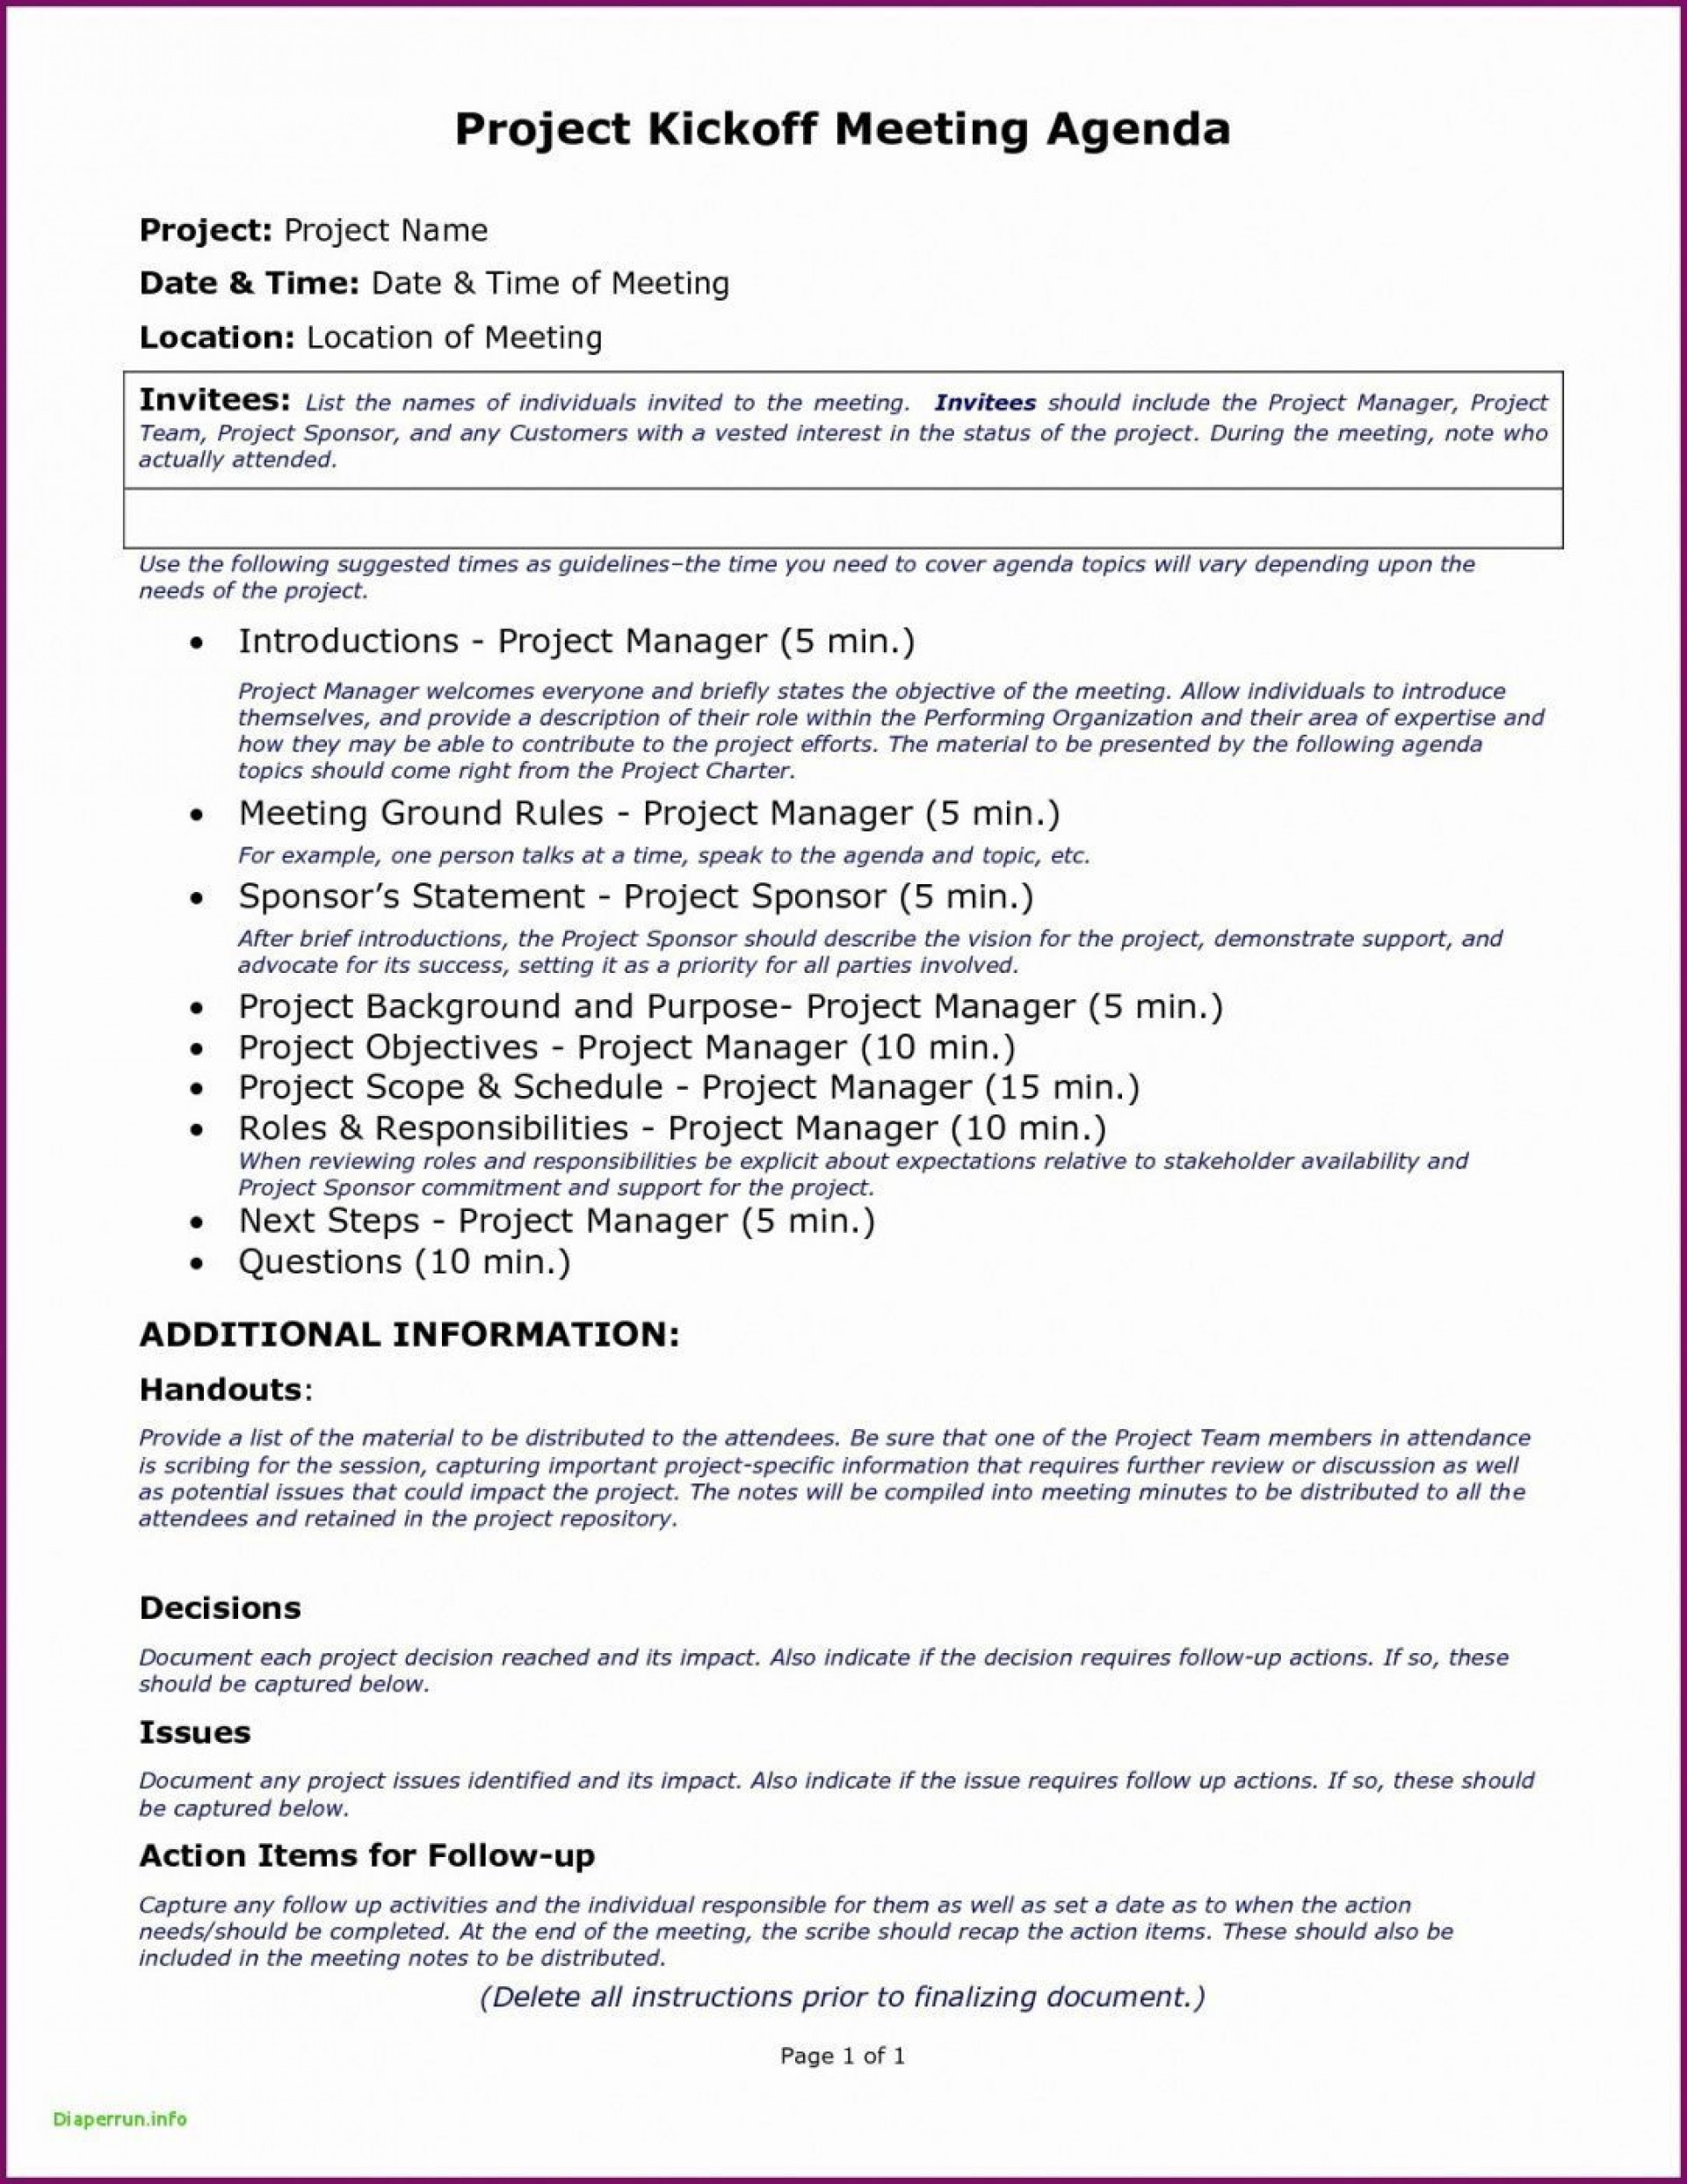 003 Amazing Project Kickoff Meeting Agenda Example  Management Template1920